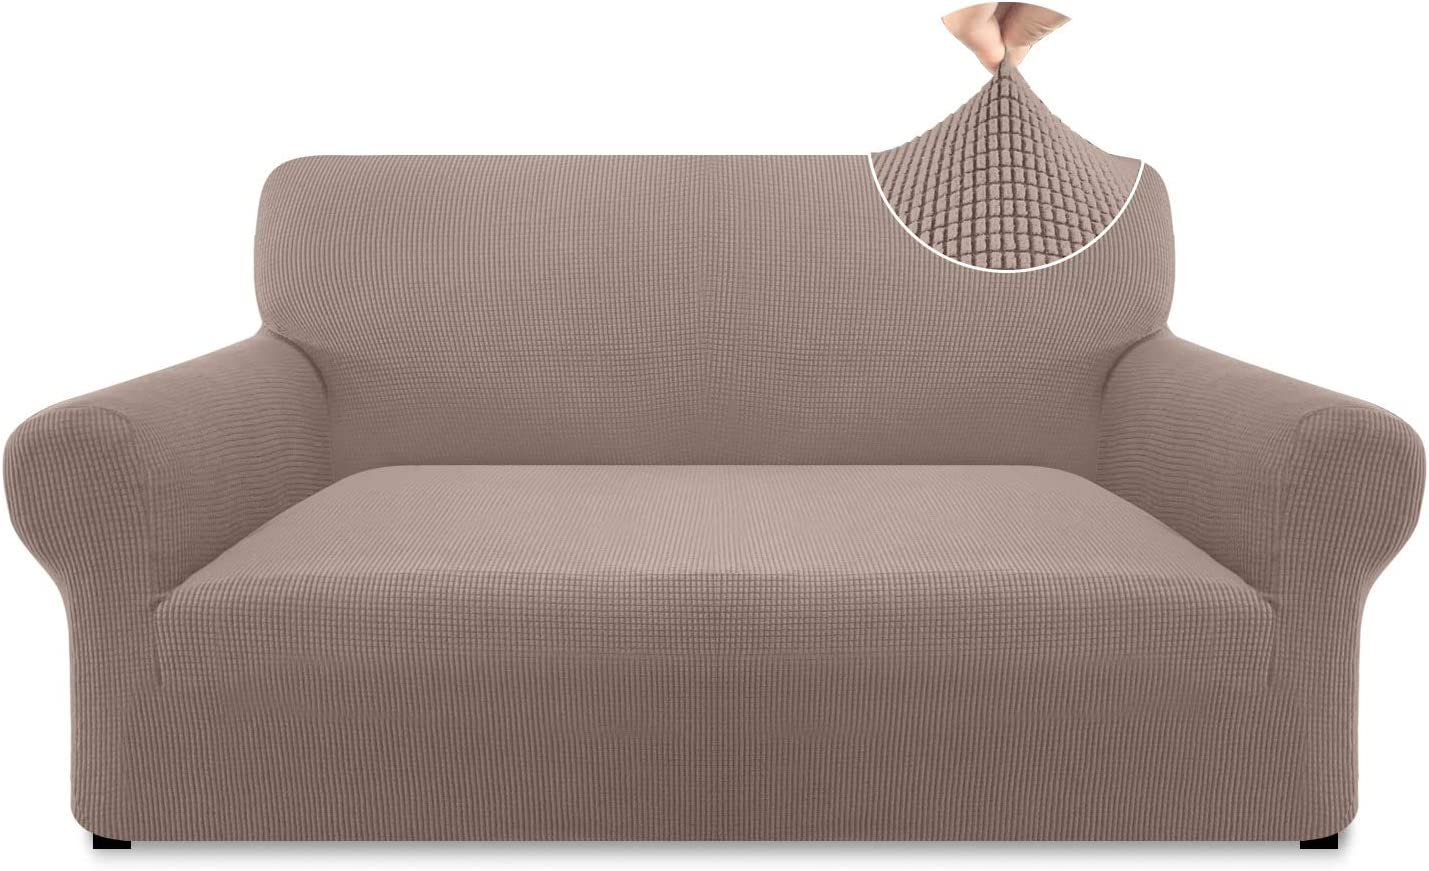 Pitpet High Stretch Loveseat Cover Couch Cover for 2 Cushion Couch Universal Loveseat Slipcover Sofa Cover with Anti-Slip Foam Rollers (Medium, Sand)